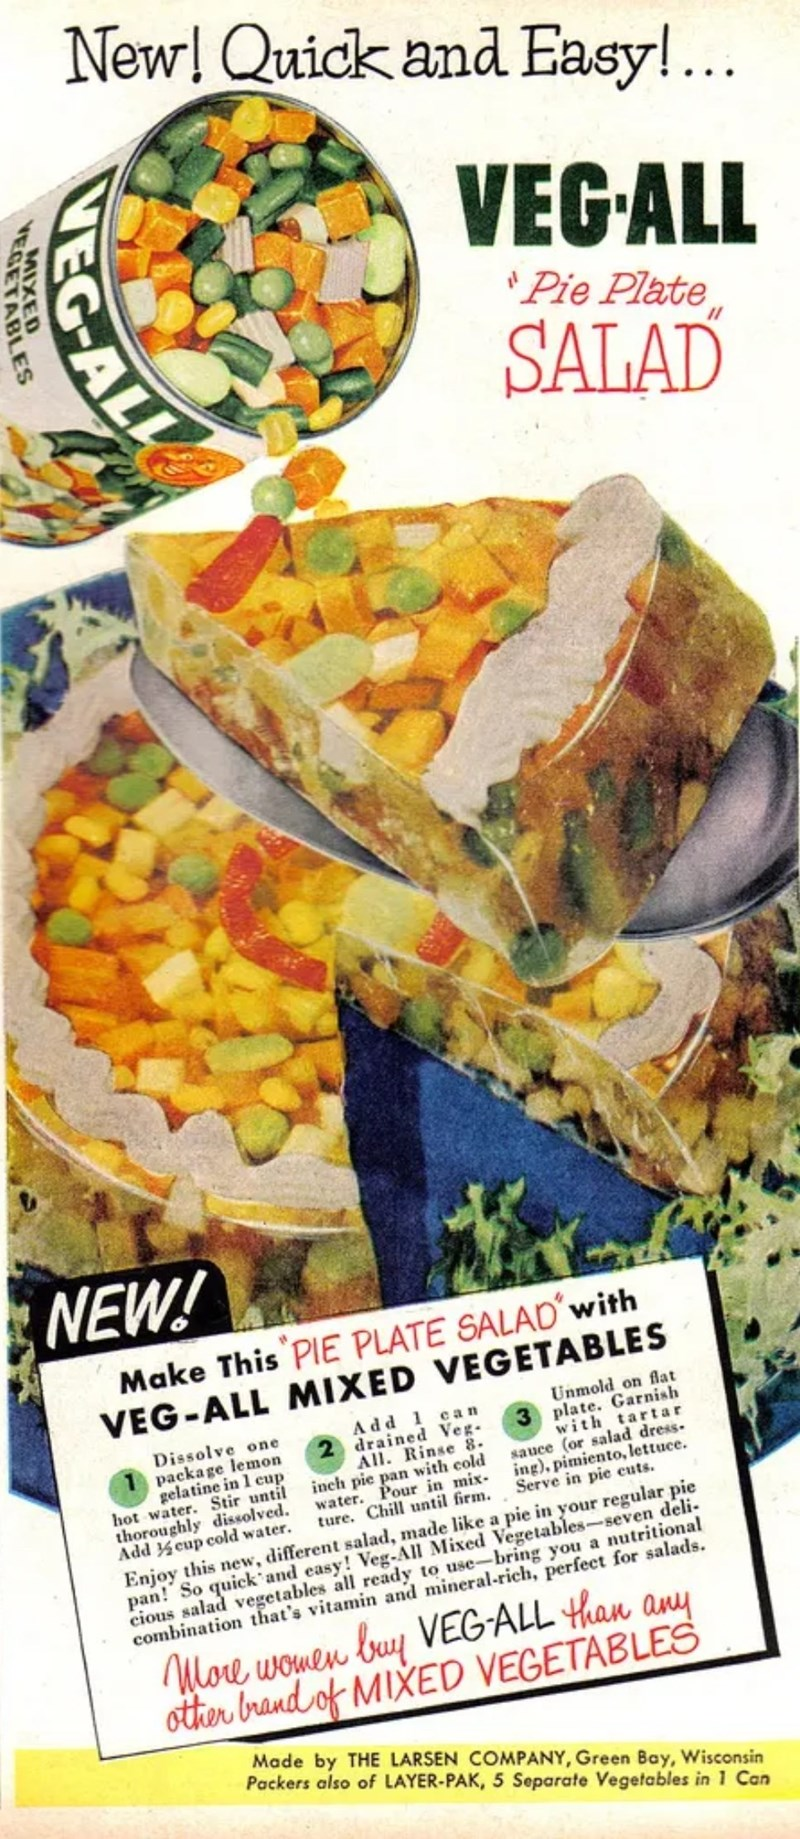 Cuisine - New! Quick and Easy!... VEGALL 'Pie Plate SALAD NEW! Make This PIE PLATE SALAD with VEG-ALL MIXED VEGETABLES Unmold on flat 3 plate. Garnish with tartar sauce (or salad dress ing), pimiento, lettuce. Serve in pie cuts Add 1 c an drained Veg All. Rinse 8 inch pie pan with cold water. Pour in mix ture. Chill until firm. Dissolve one package lemon gelatine in 1 cup hot water. Stir until thoroughly dissolved. Add eup cold water. Enjoy this new, different salad, made like a pie in your regu